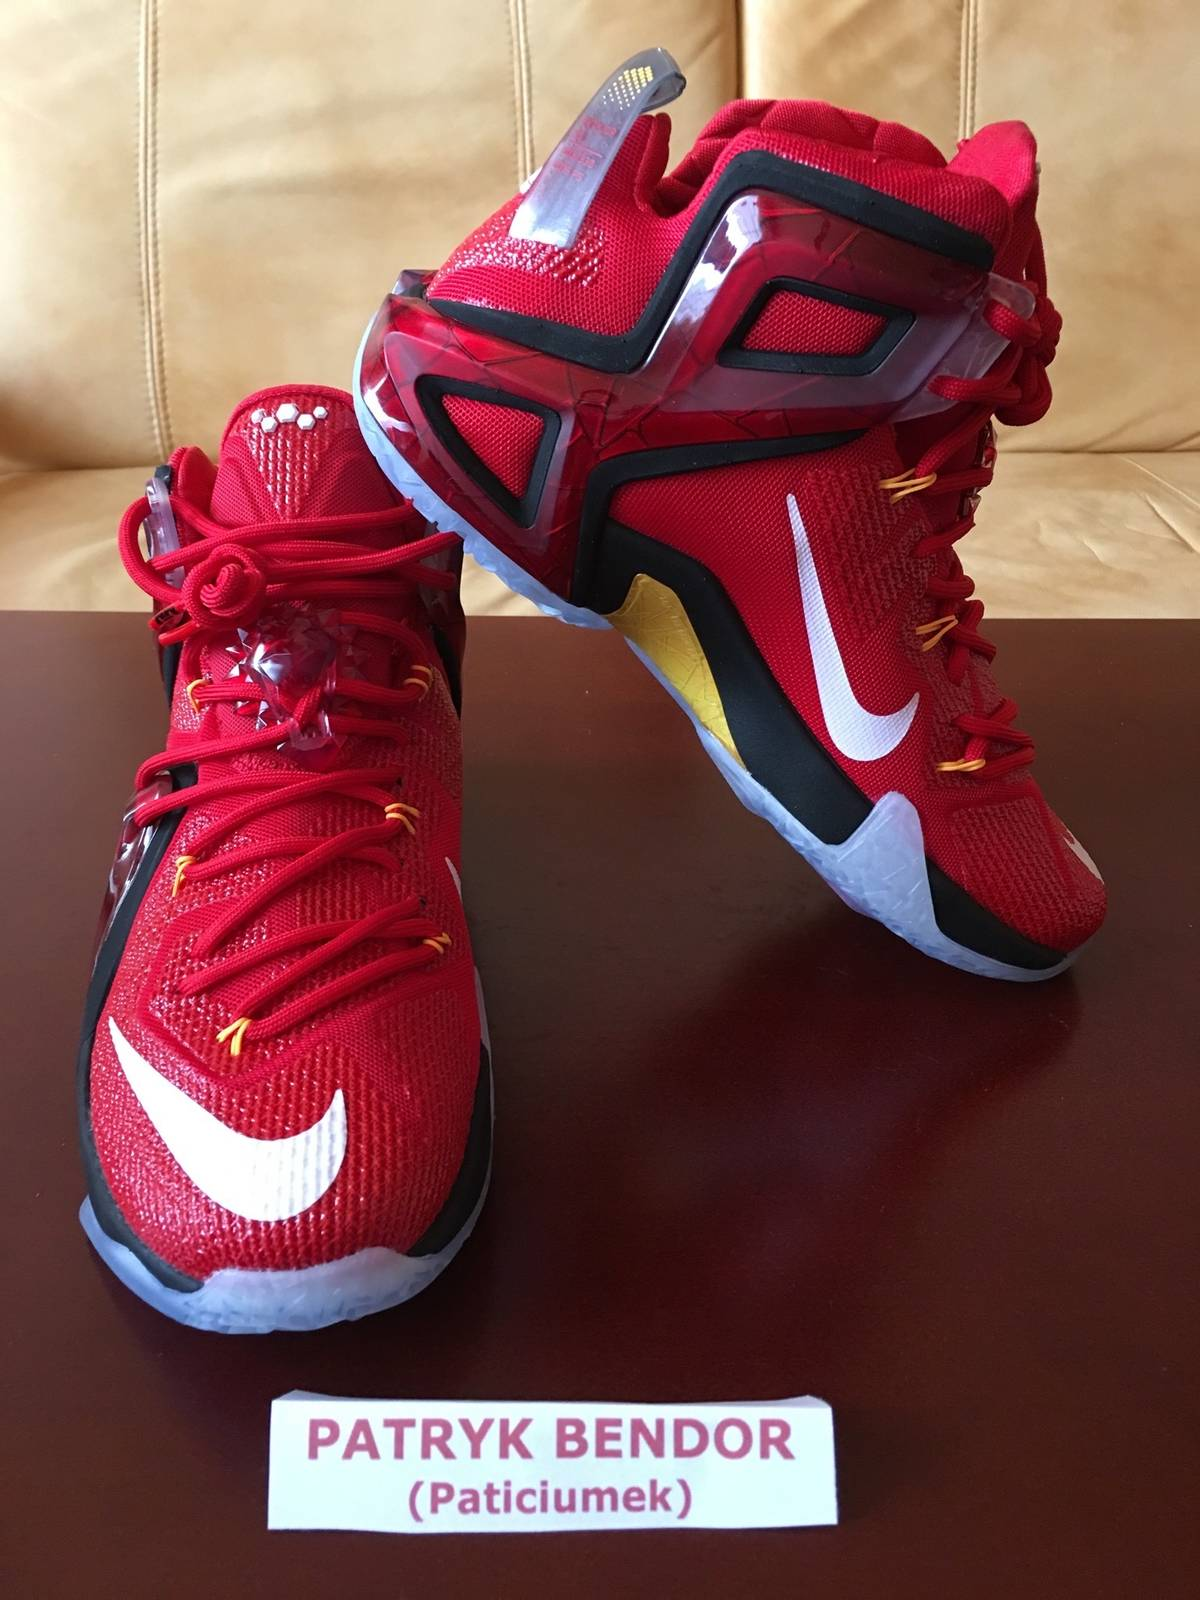 lebron elite 12. nike lebron 12 elite ignite